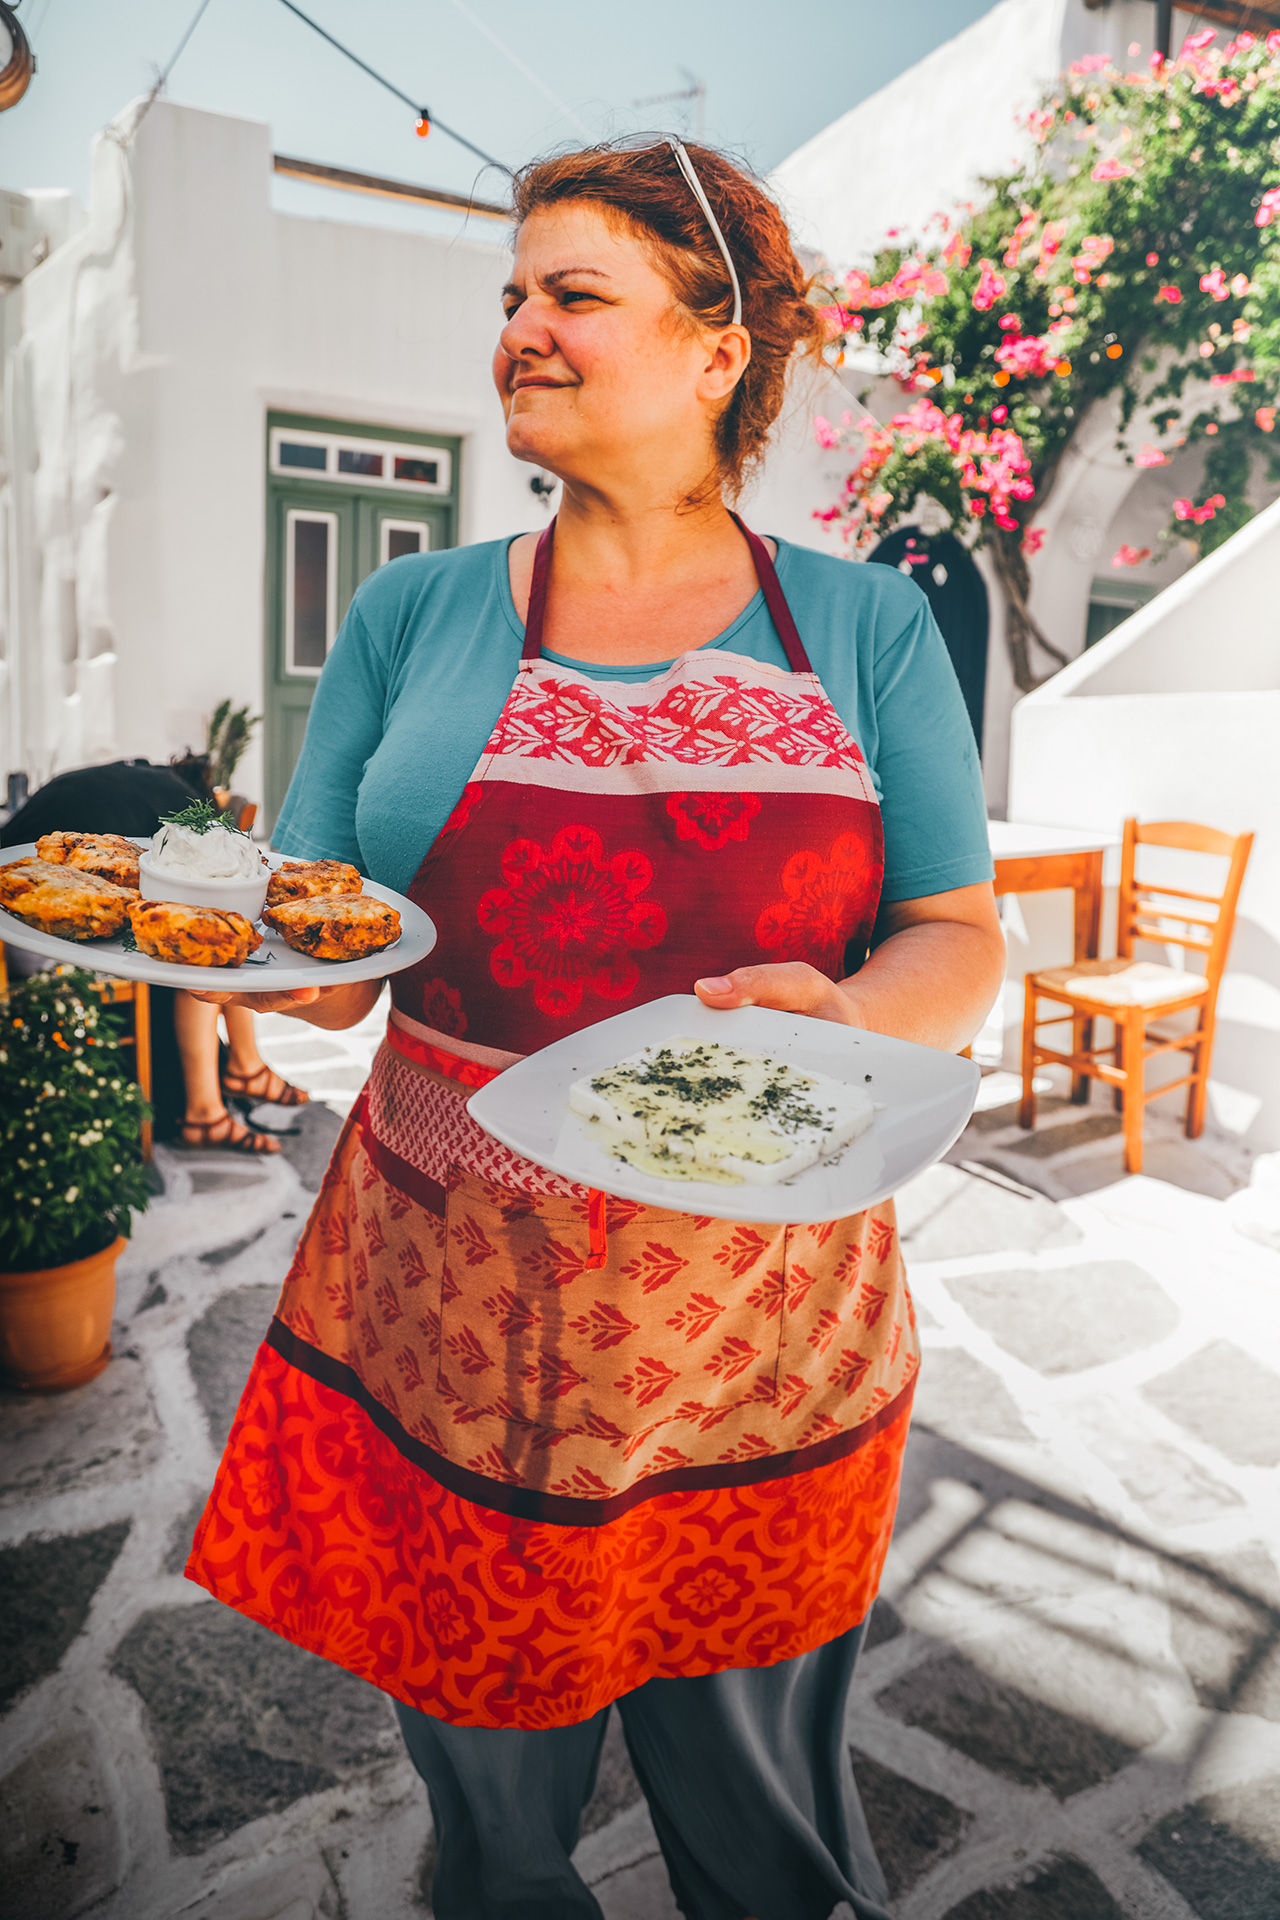 Prepare yourself for local delicates and the welcoming smile of locals